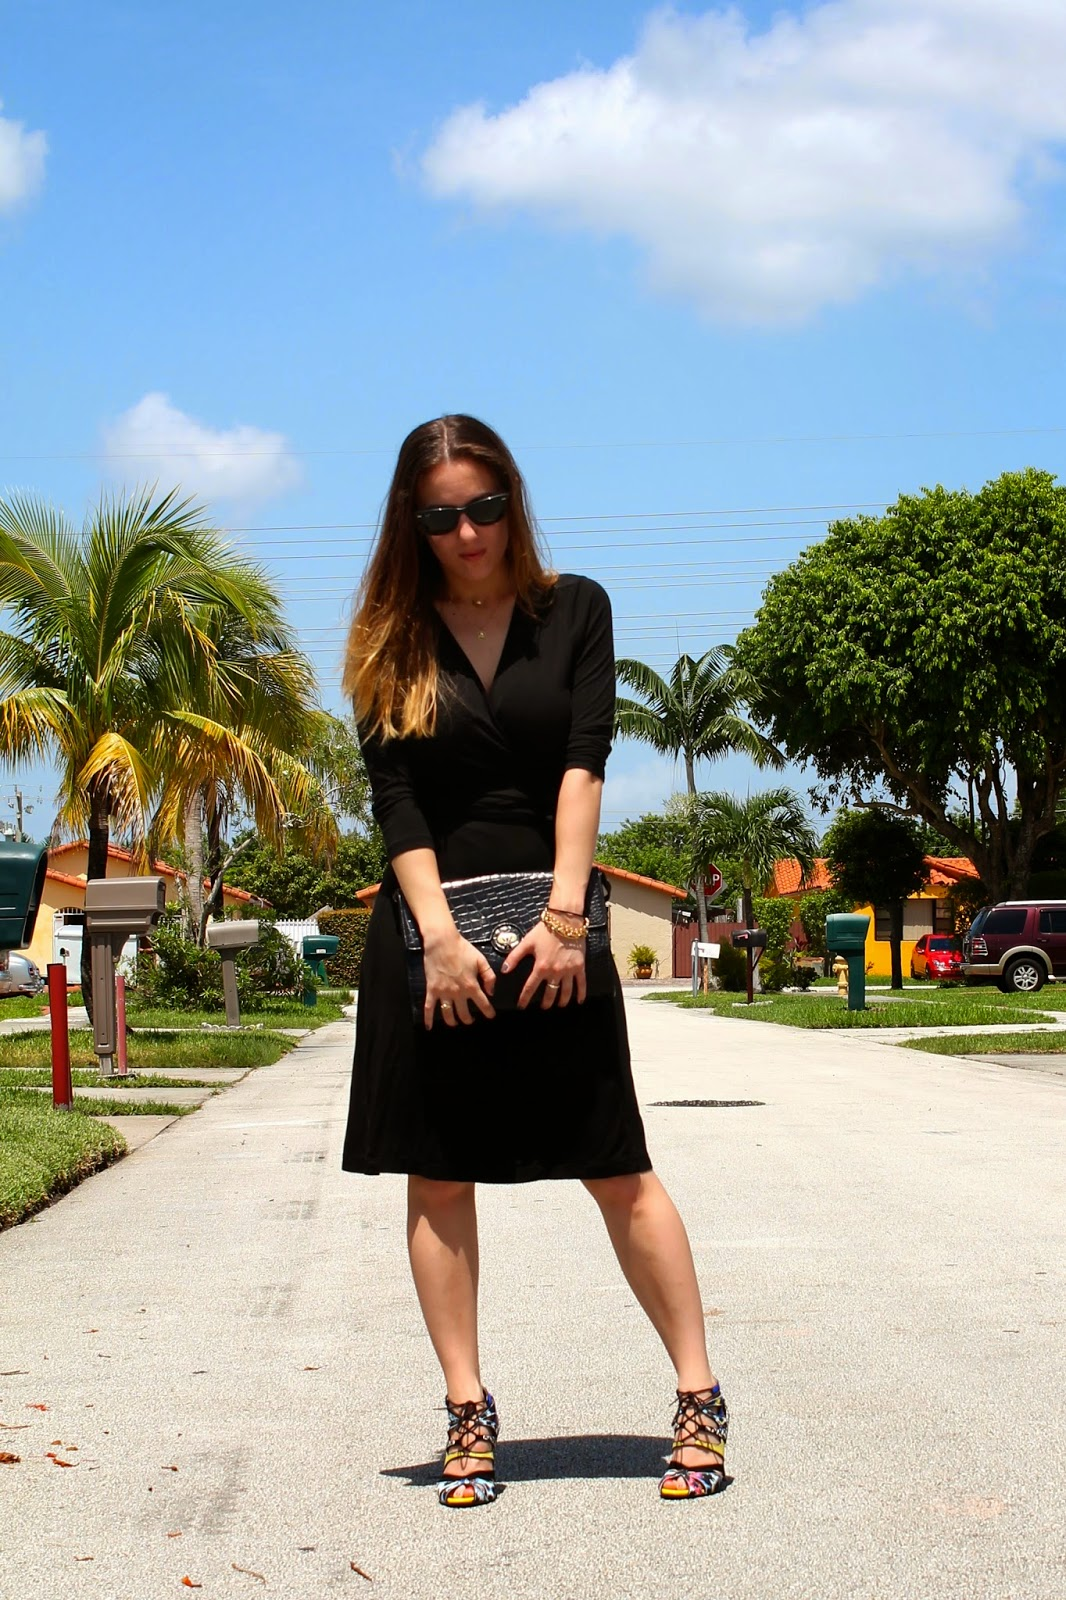 Zara, Banana Republic, vintage, Ray-Ban, wrap dress, LBD, classic, prep, Miami, Miami fashion, Miami fashion blogger, street style, blogger style, ootd, fashion blog, style blog